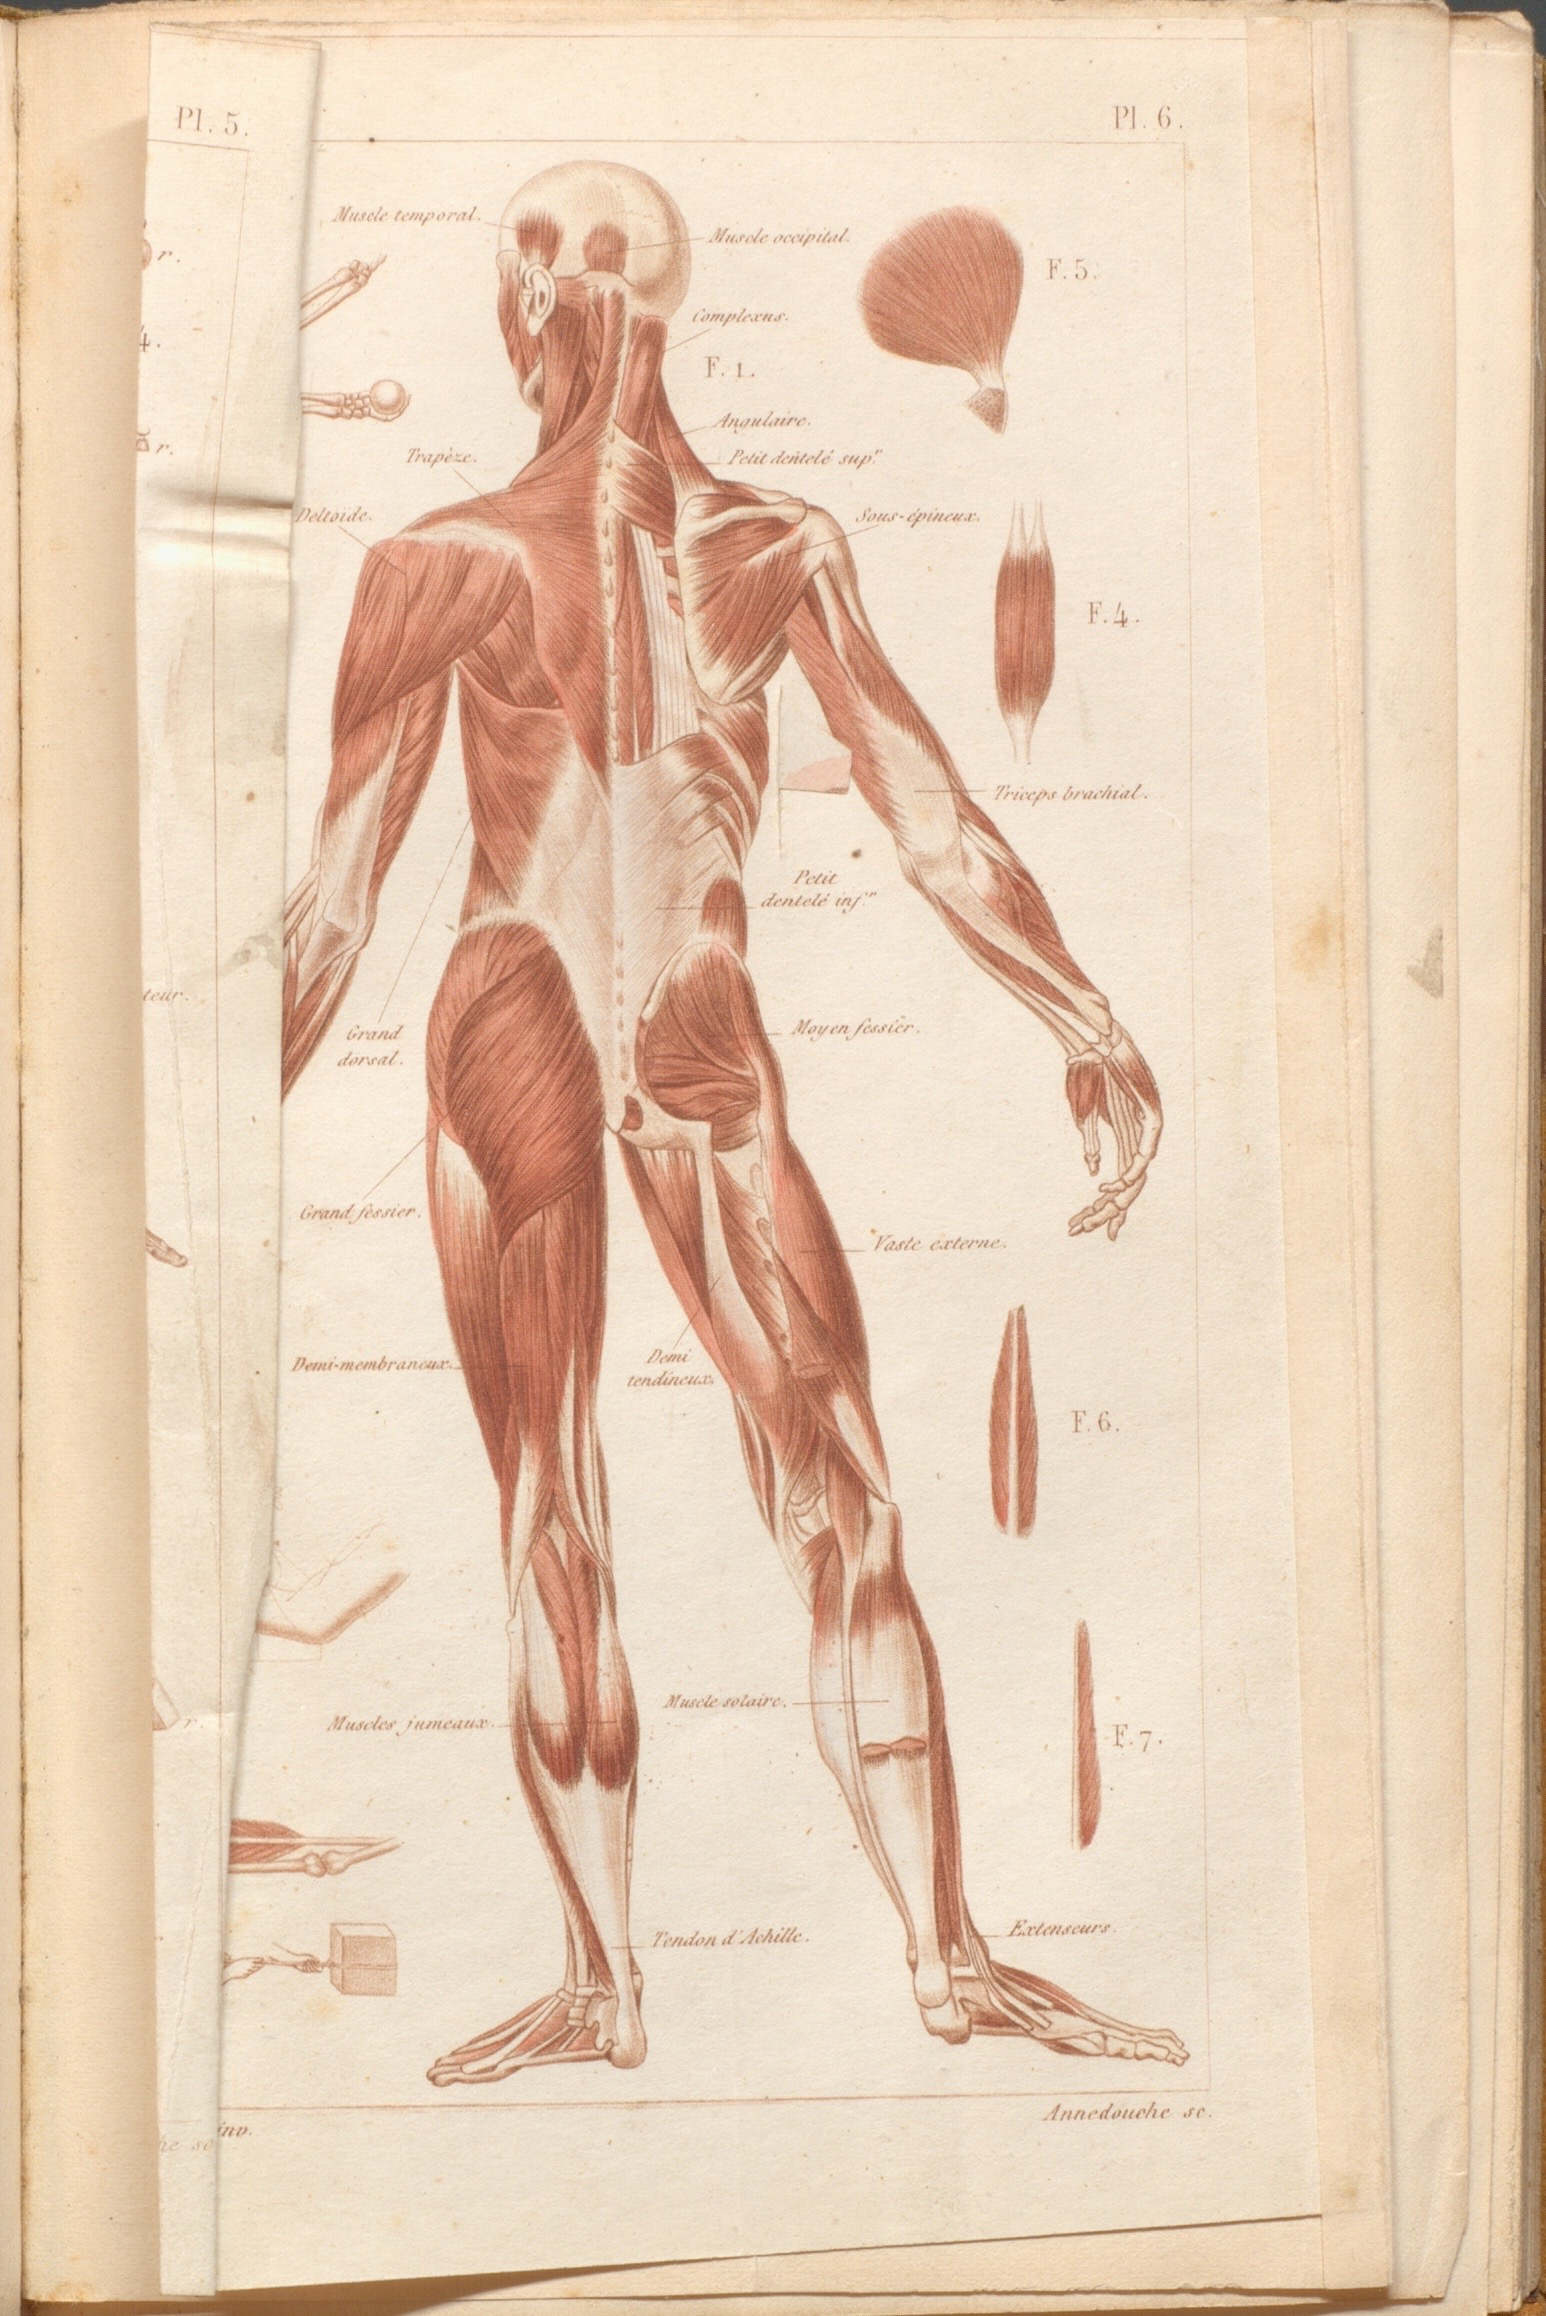 anatomical atlas | De re medica